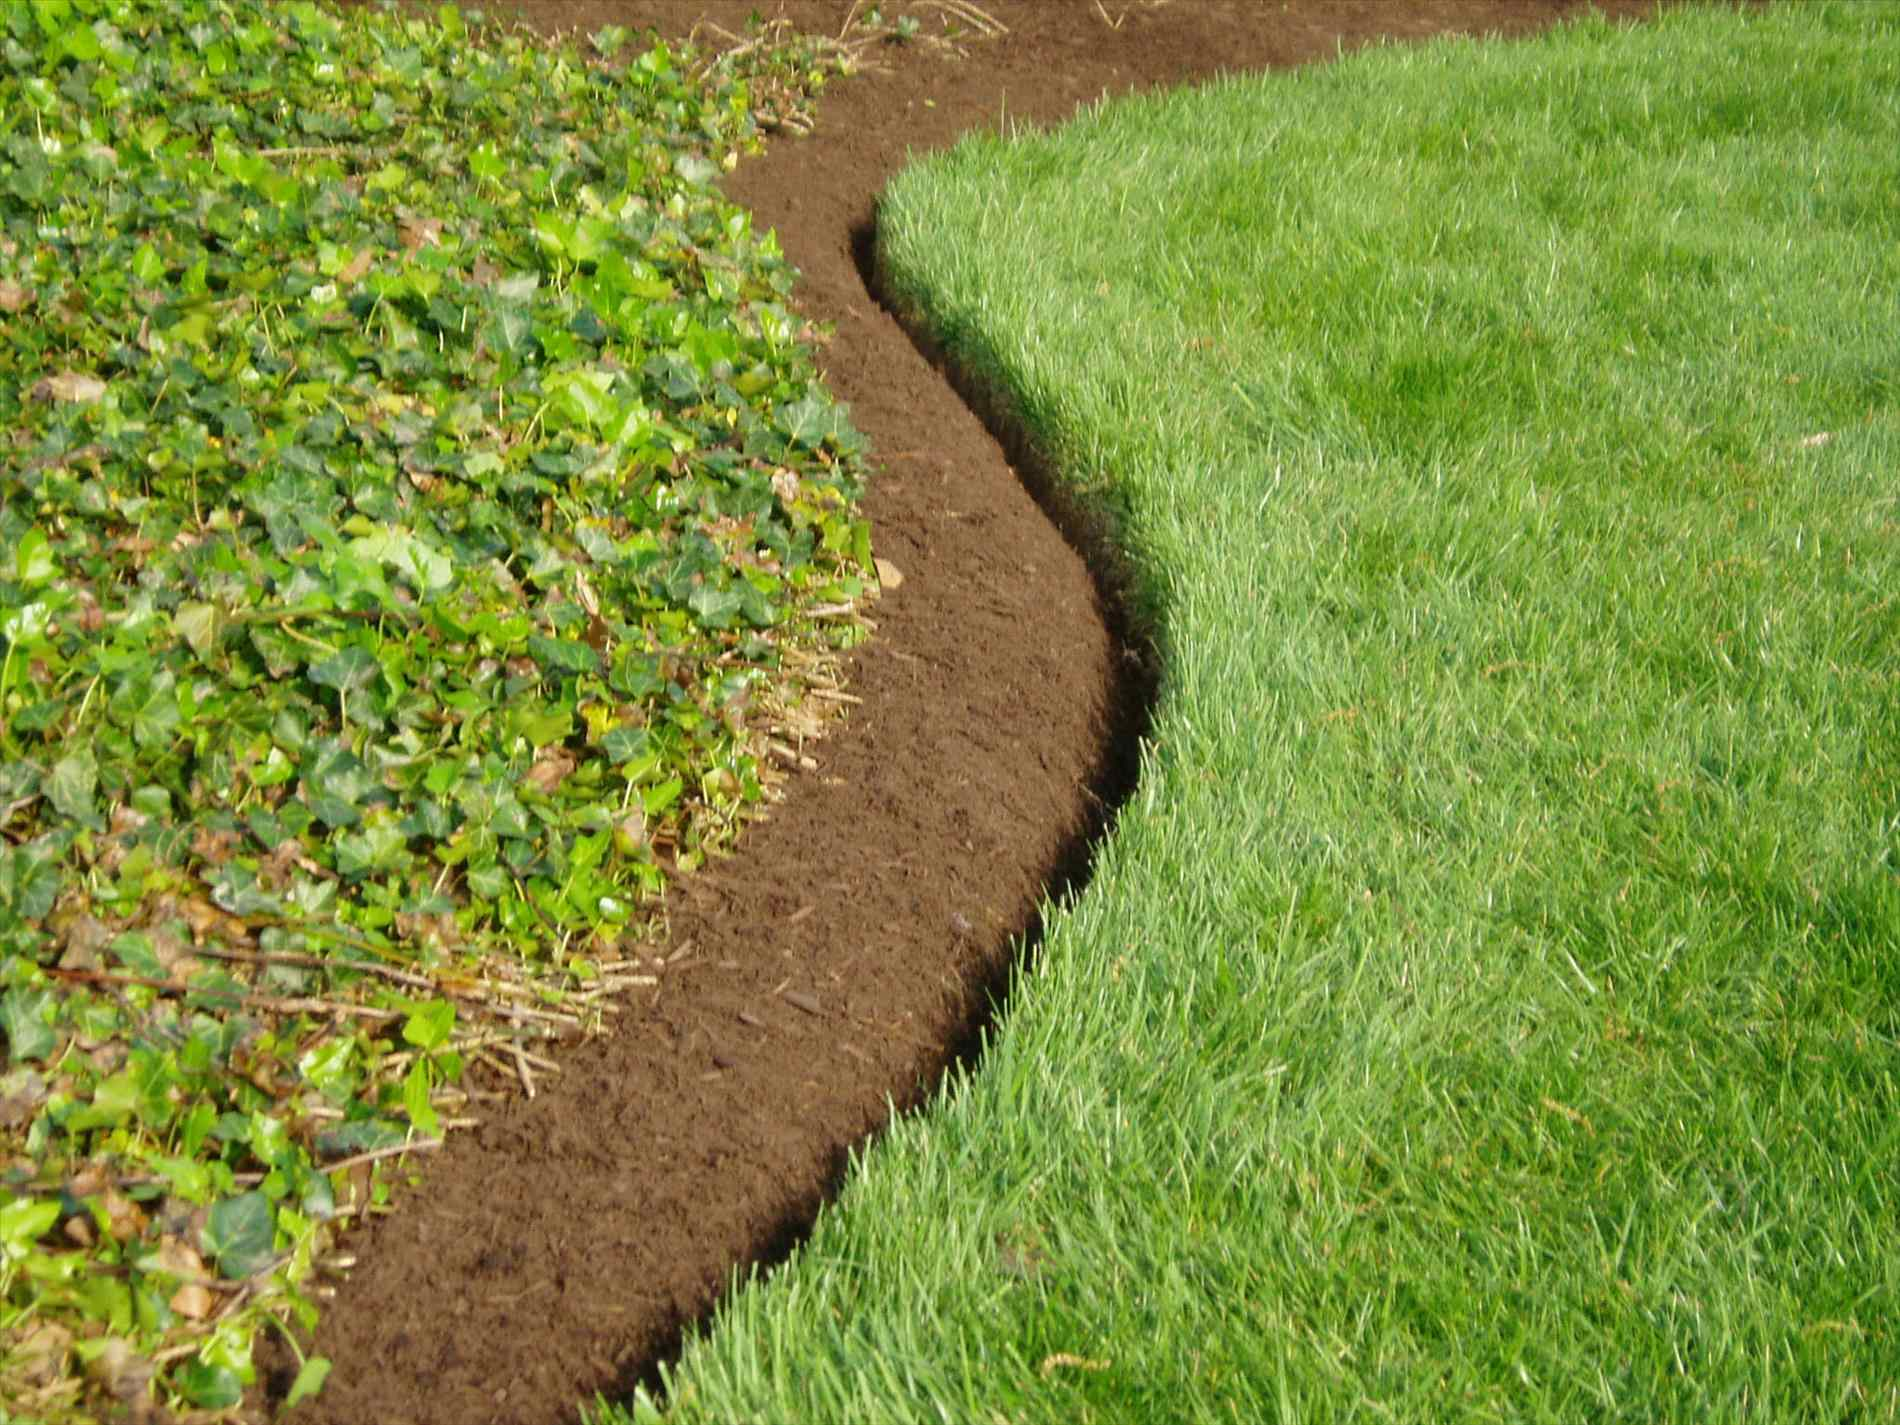 Home Depot Landscape Edging | Rubber Edging | Driveway Edging Ideas